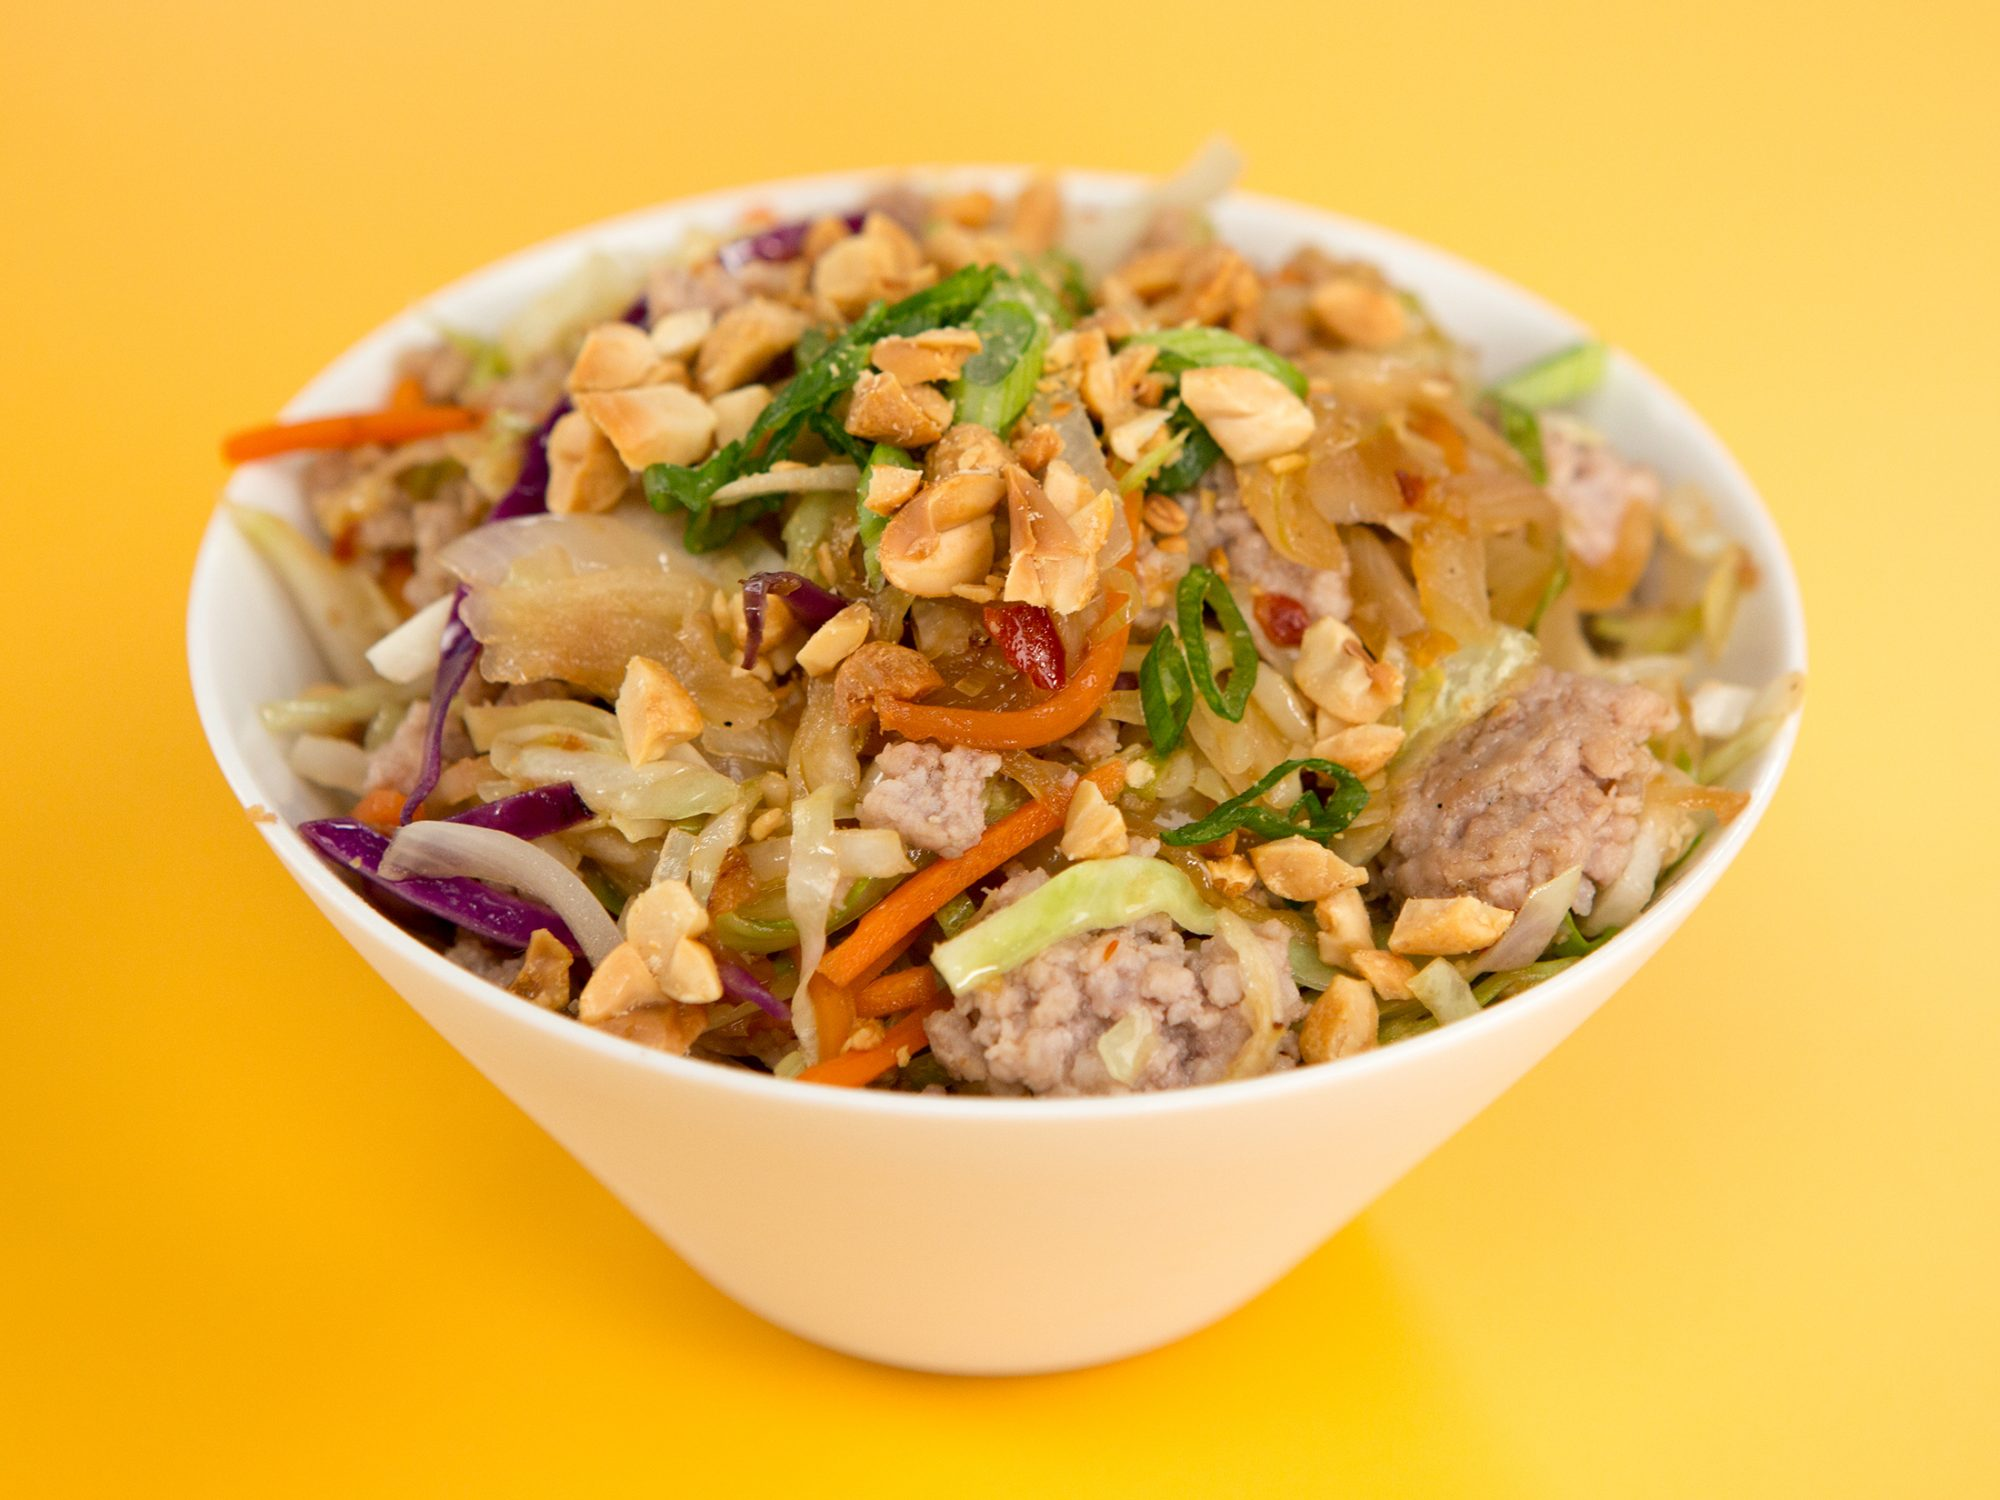 Keto Egg Roll Bowl image